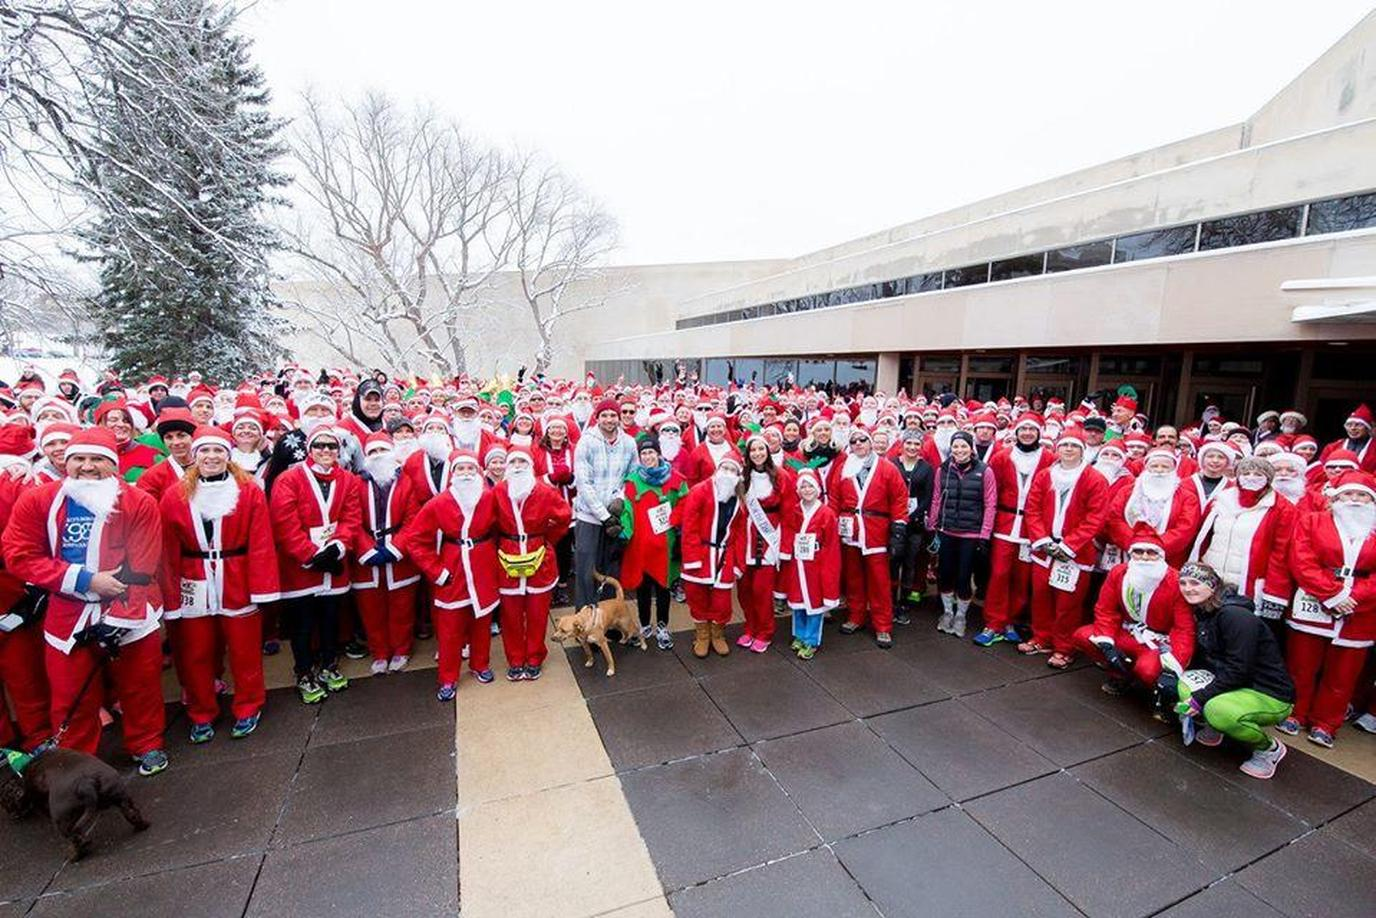 A Group of Santas Pose at a Pet-Friendly Event in North Dakota.